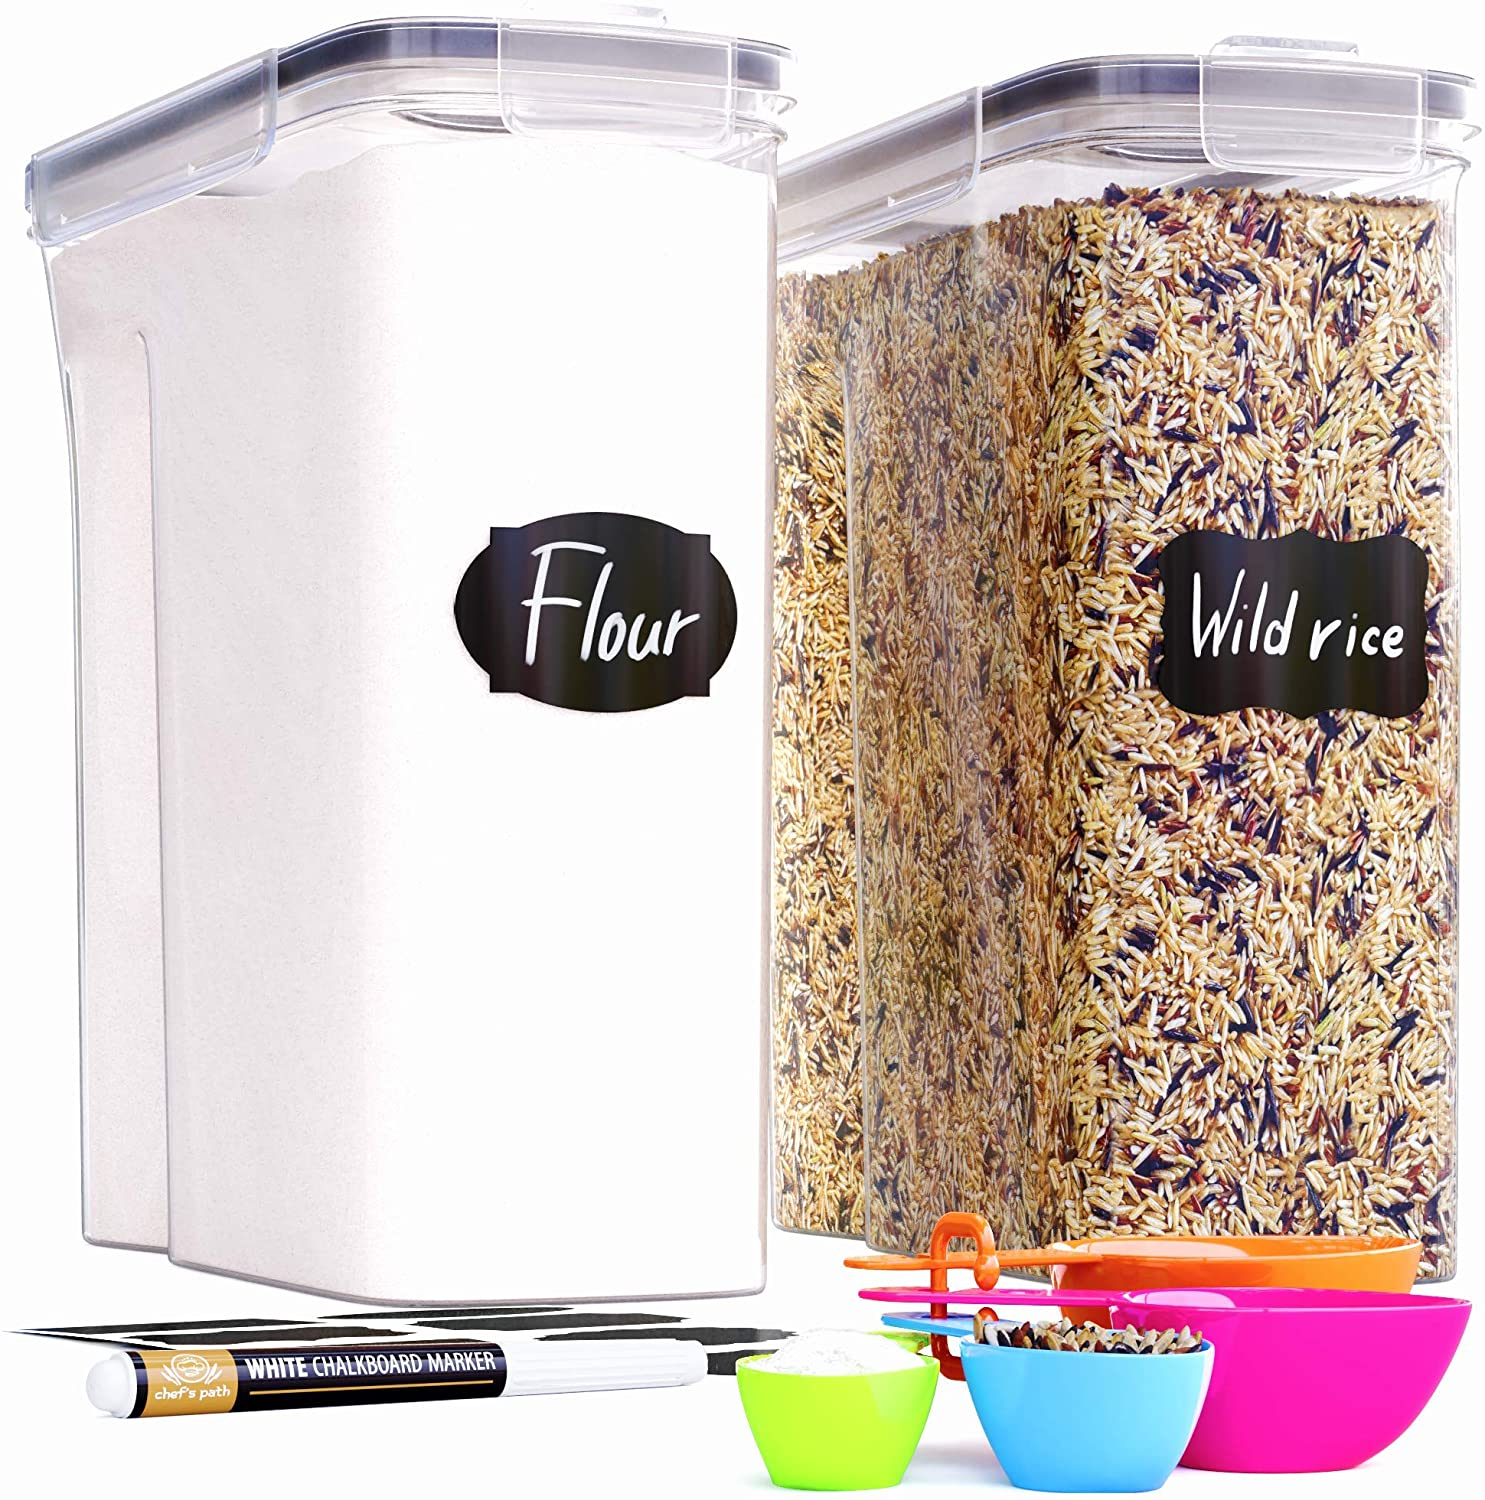 Extra Large Tall Food Storage Containers (213oz) for Rice, Flour, Sugar & Cereal Airtight Kitchen & Pantry Organization Bulk Food Storage, BPA-Free - 2 PC Set - Canisters, Pen & Labels - Chef's Path